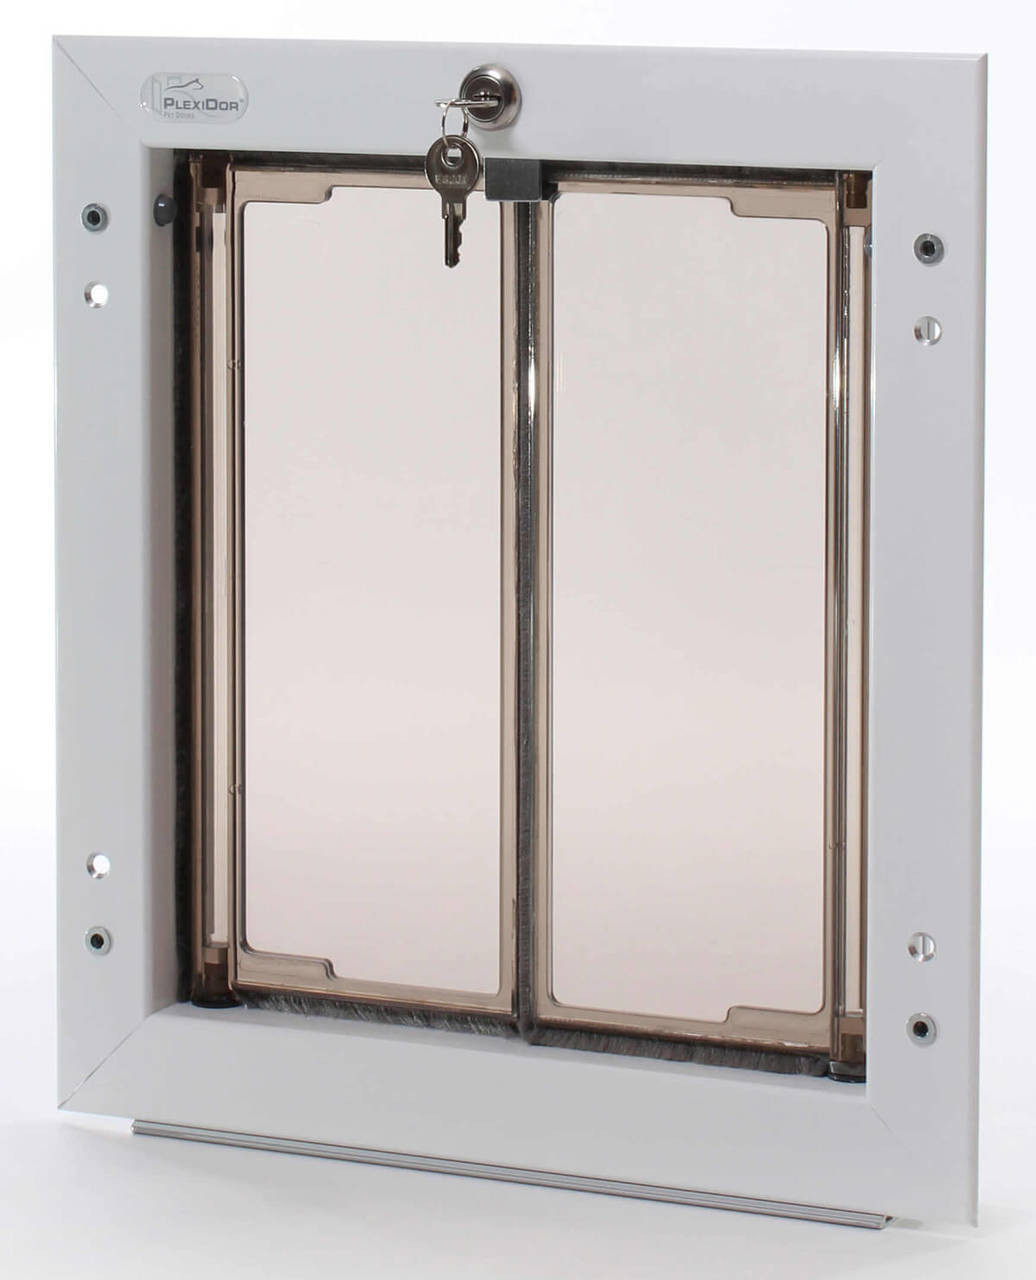 Plexidor doggy doors use a keyed lock which prevents the flaps from swinging and come with a steel cover for a more secure lock